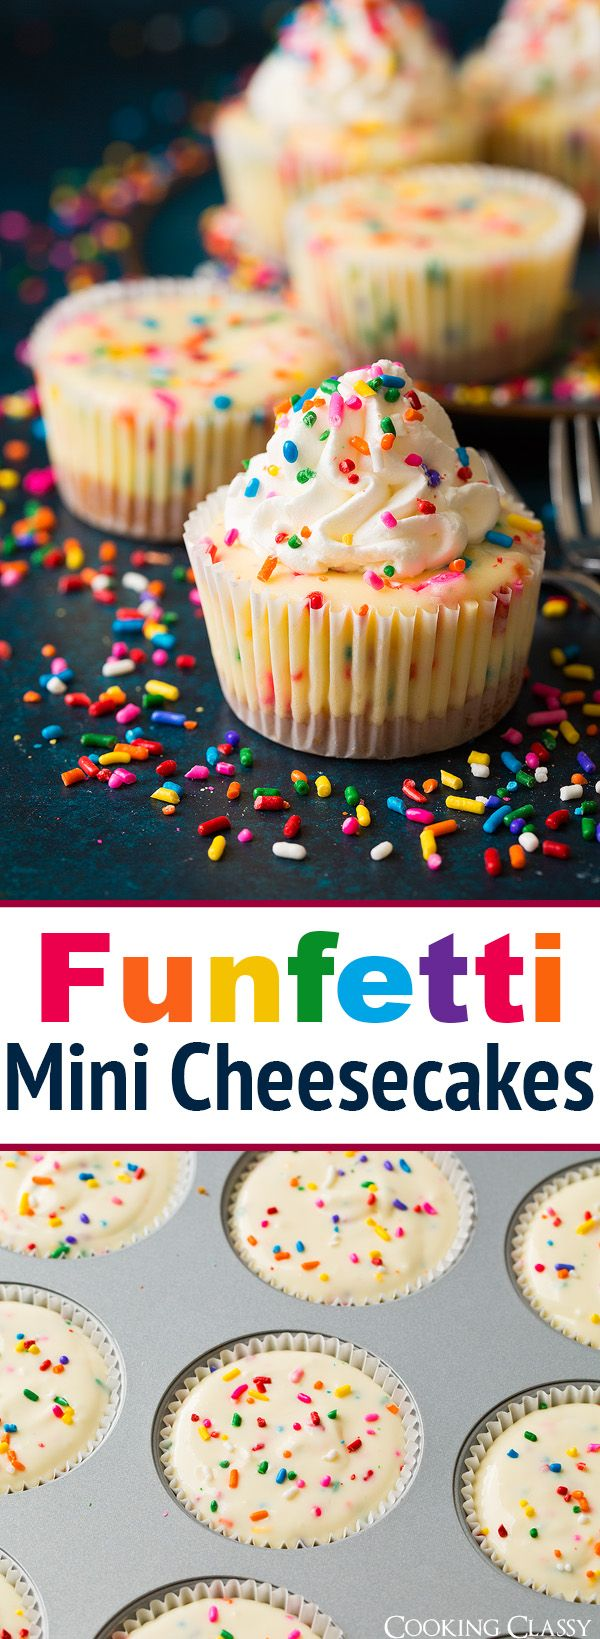 Funfetti Mini Cheesecakes - these are seriously delicious! Taste just like funfetti cake + the goodness of cheesecake.